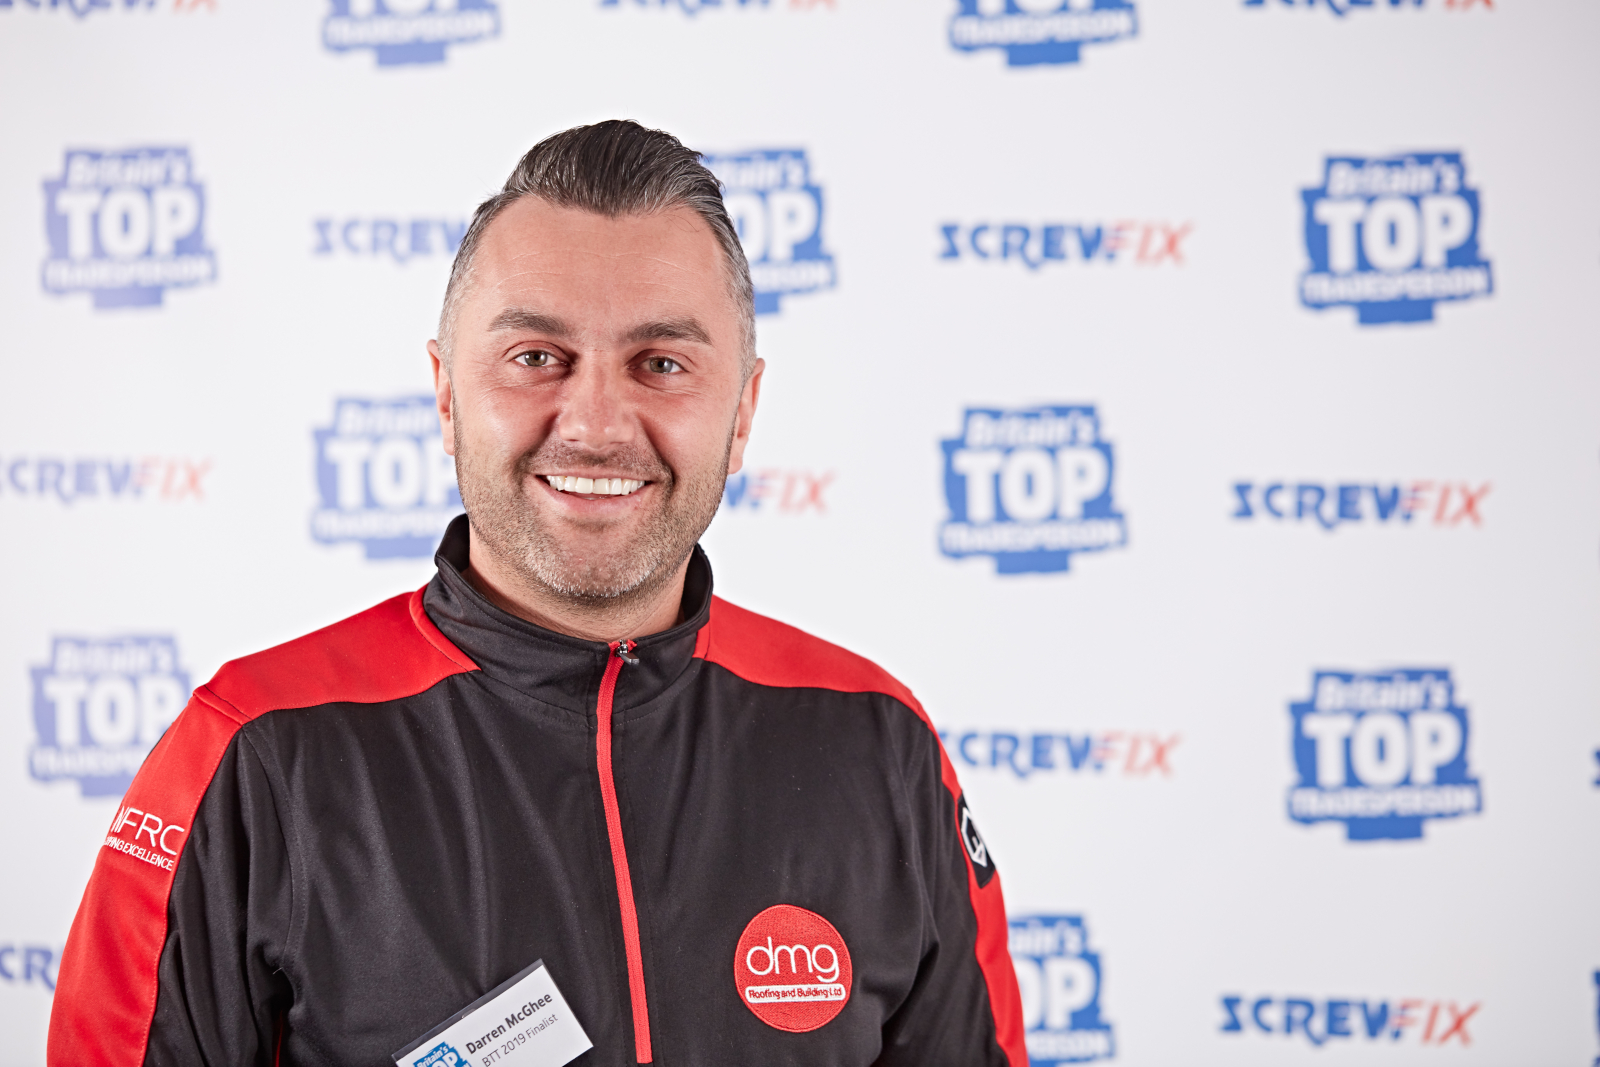 Roofer crowned Britain's Top Tradesperson 2019